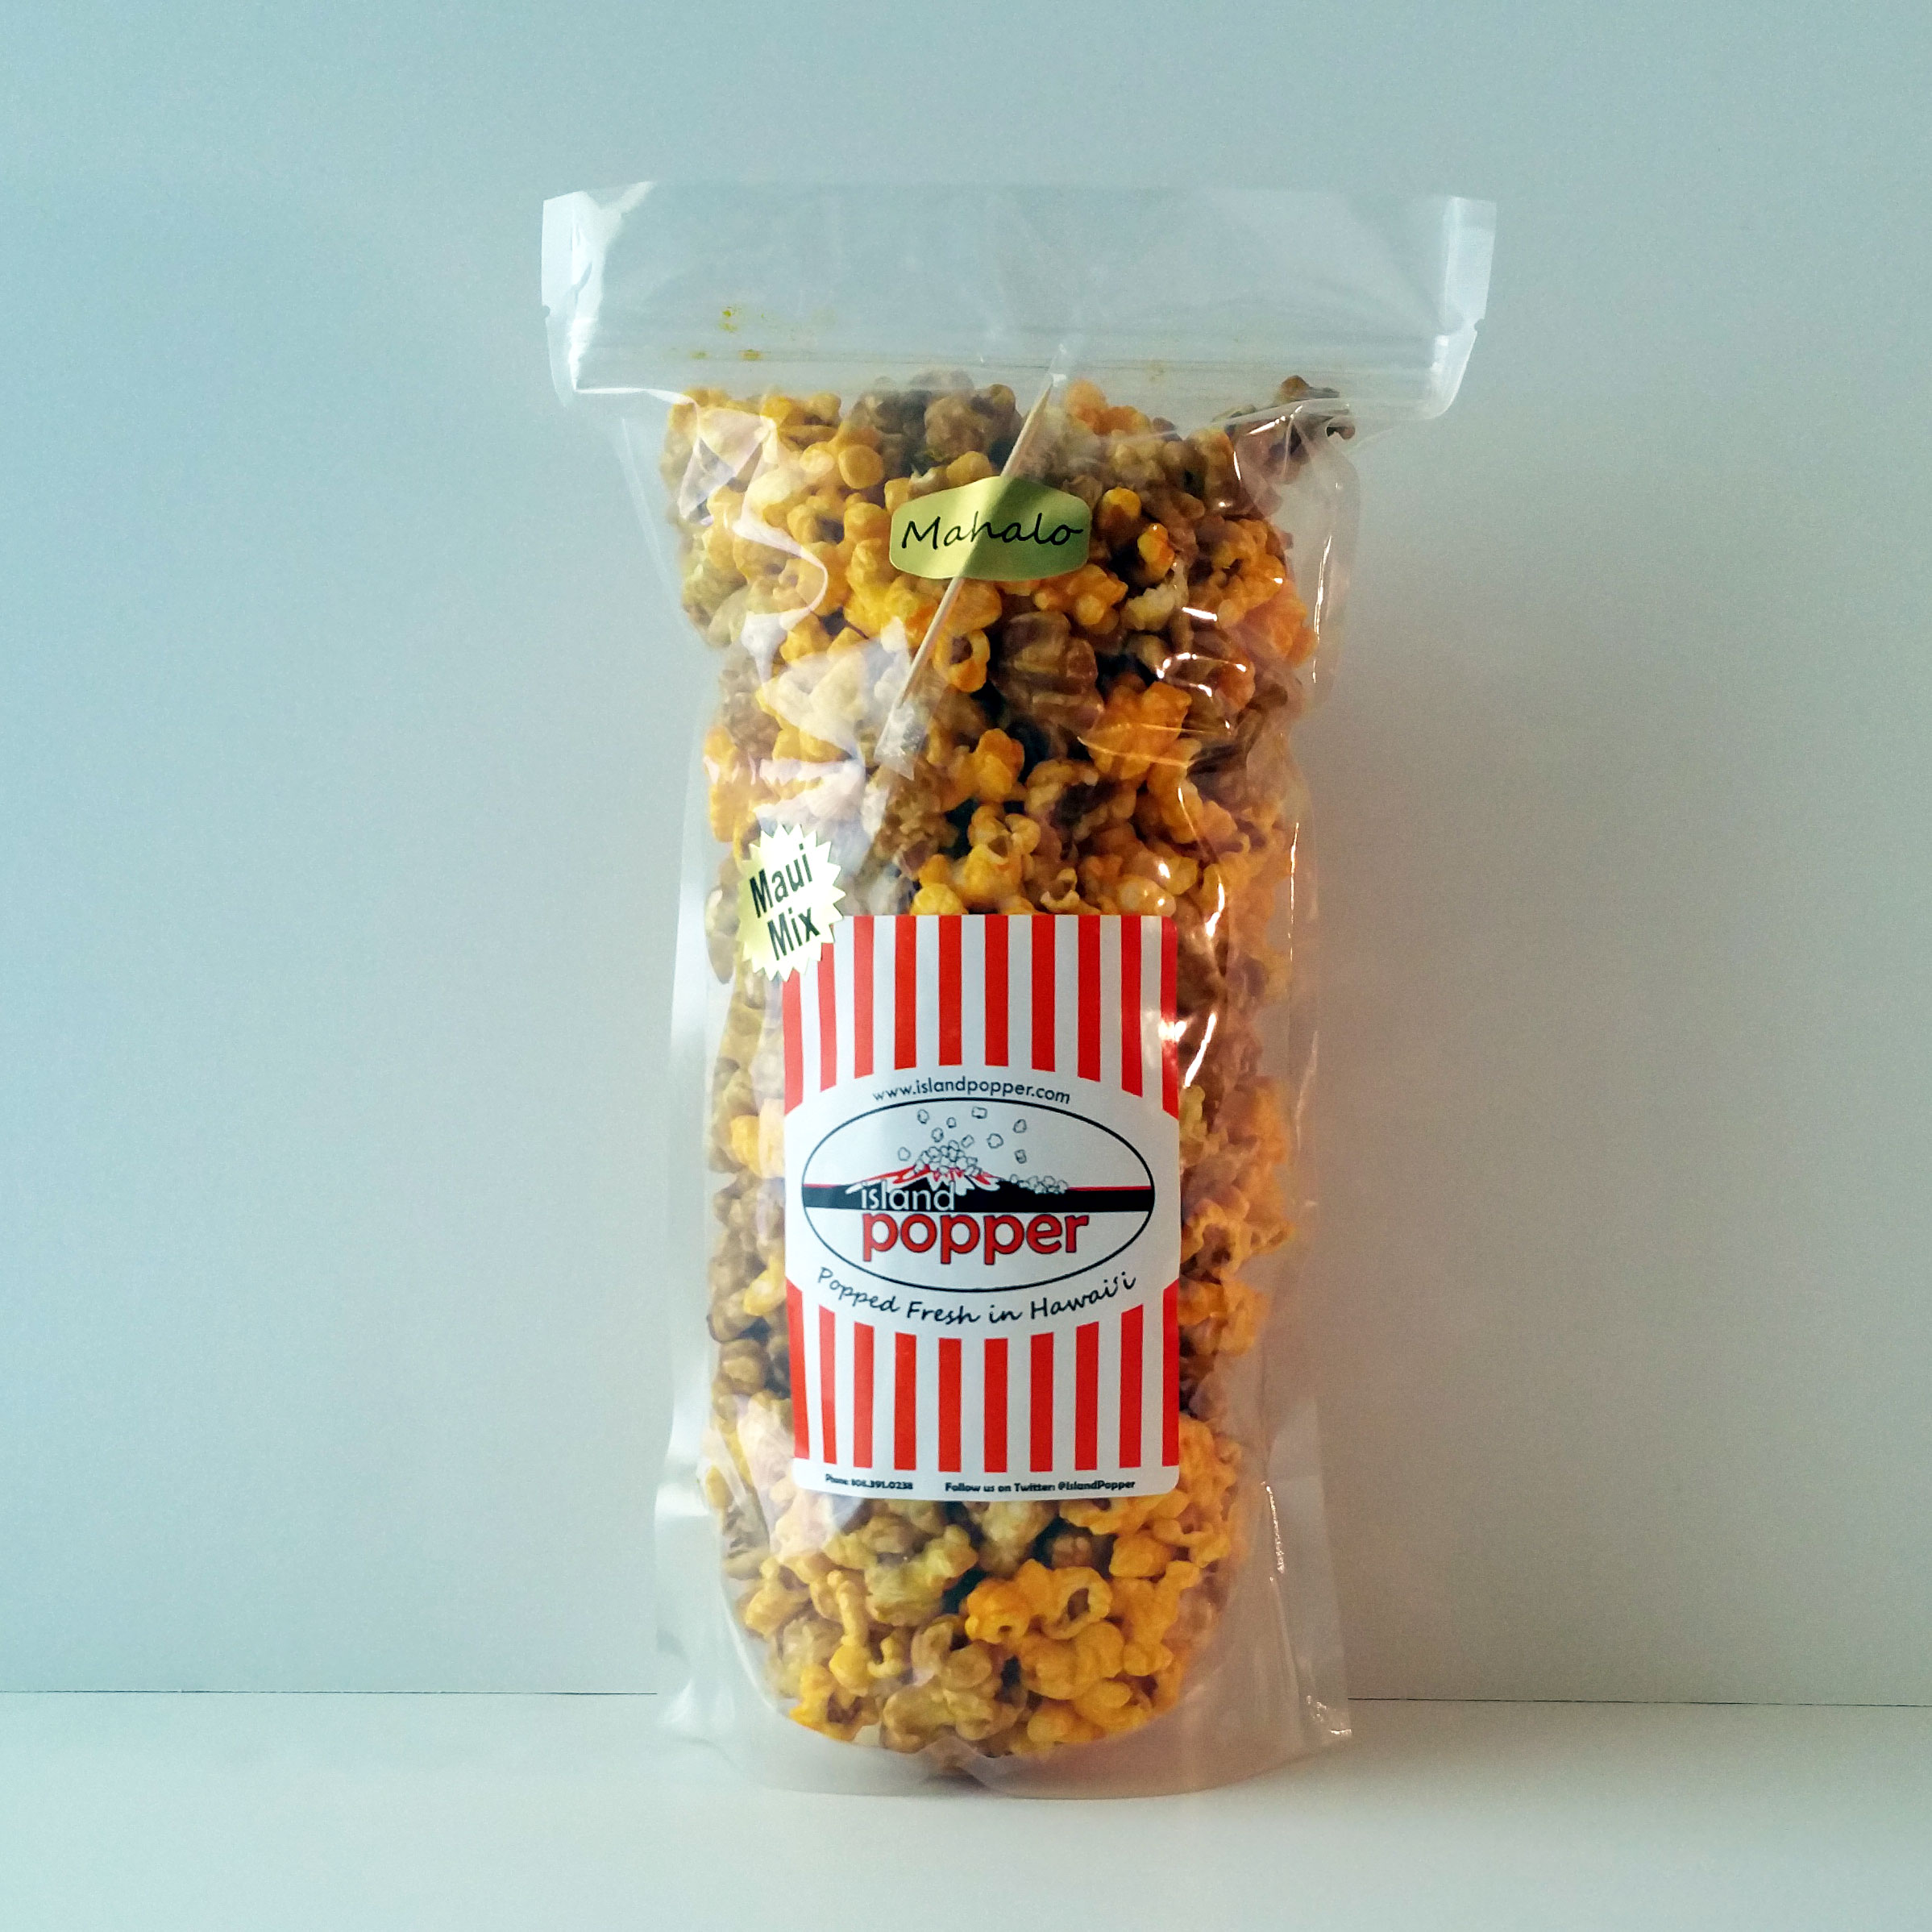 Maui MixRich, buttery Caramel combined with our Real Cheddar Cheese popcorn